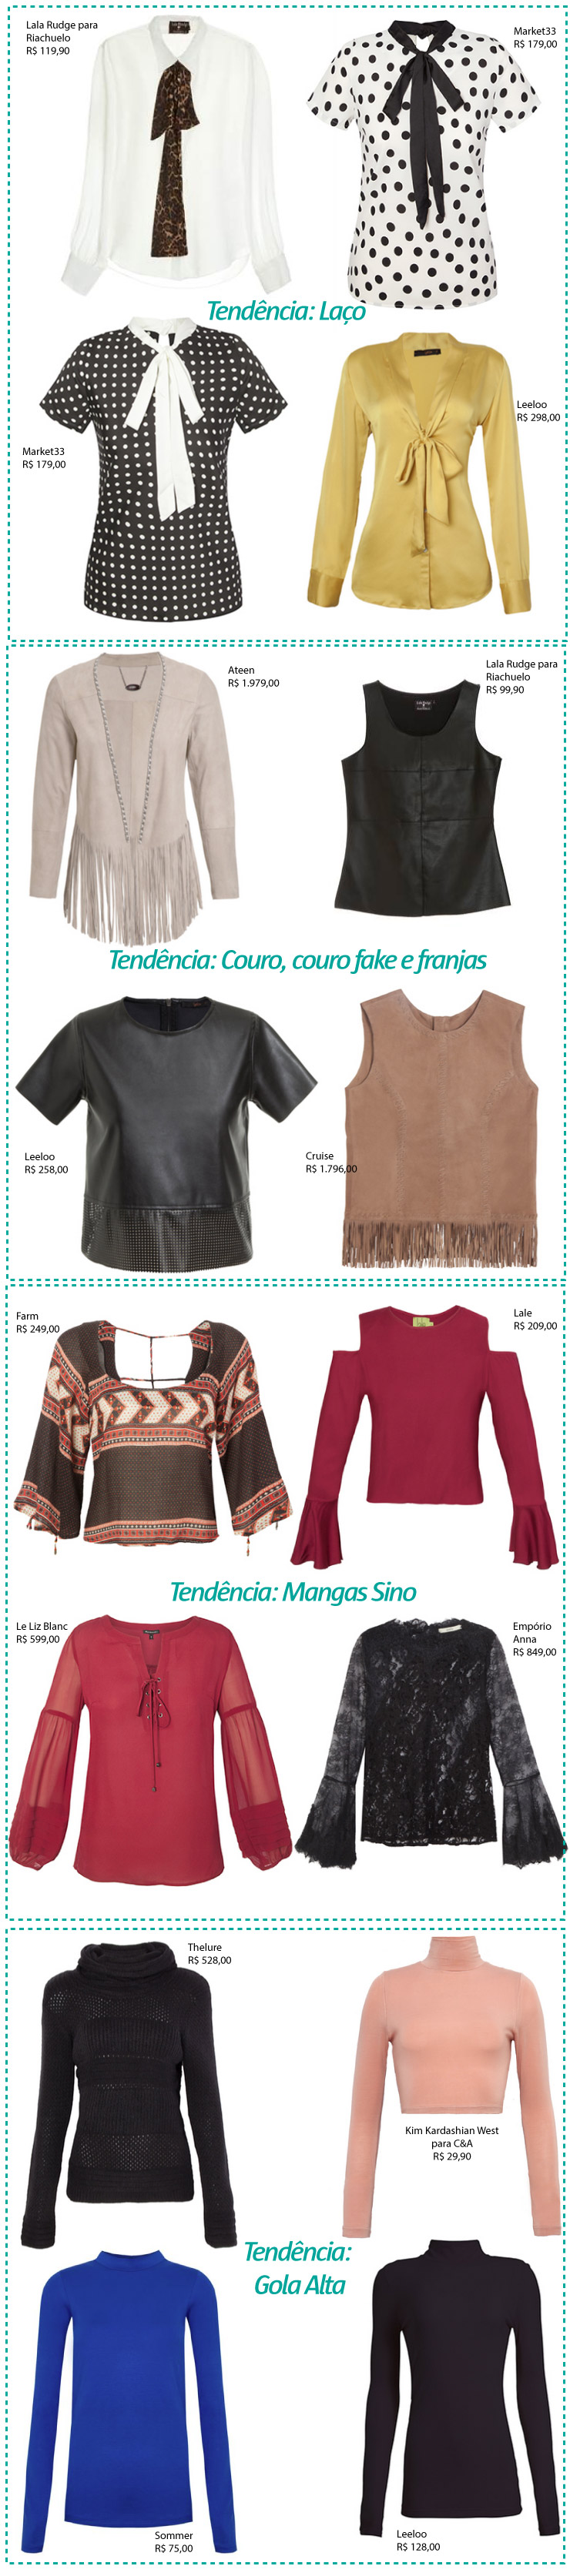 tendencias_blusas_blog_grifina